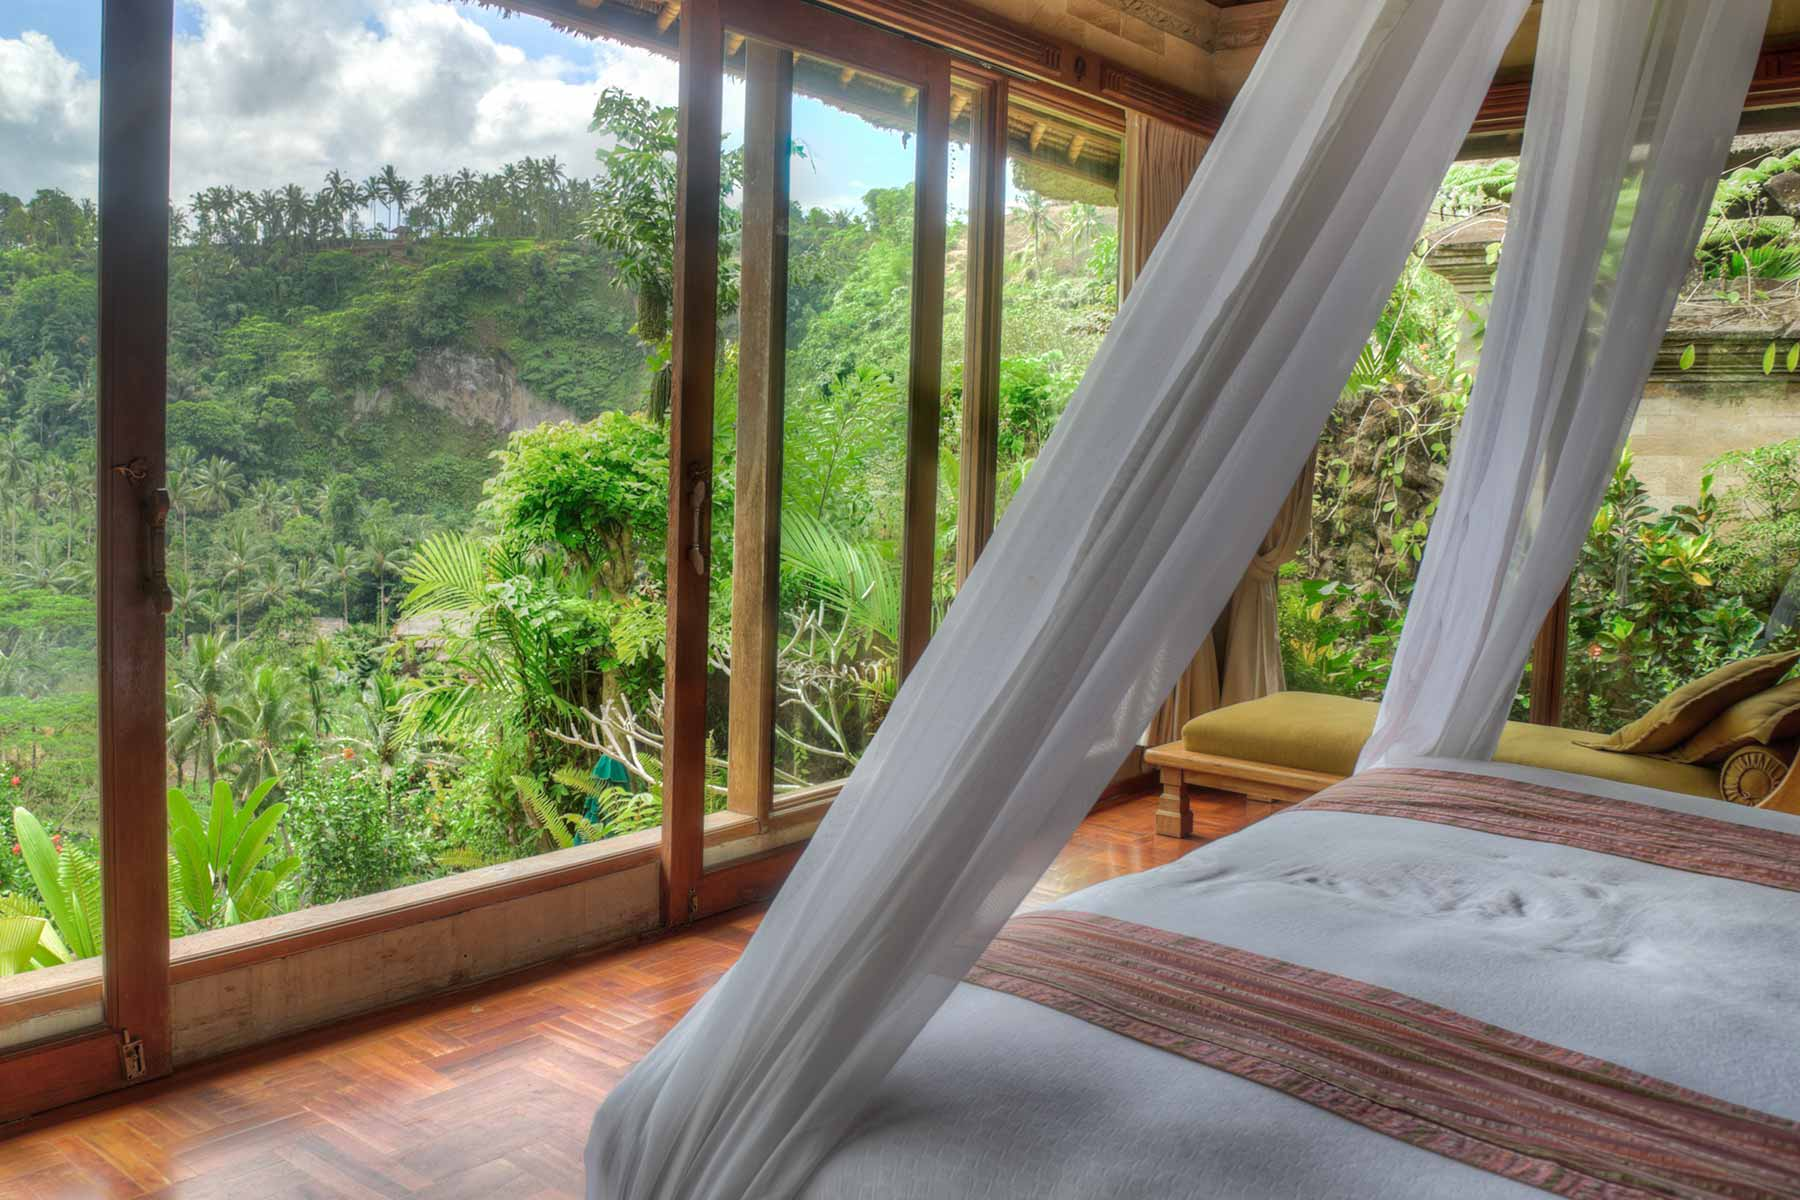 Linens adorn a destination club home master bed surrounded by jungle